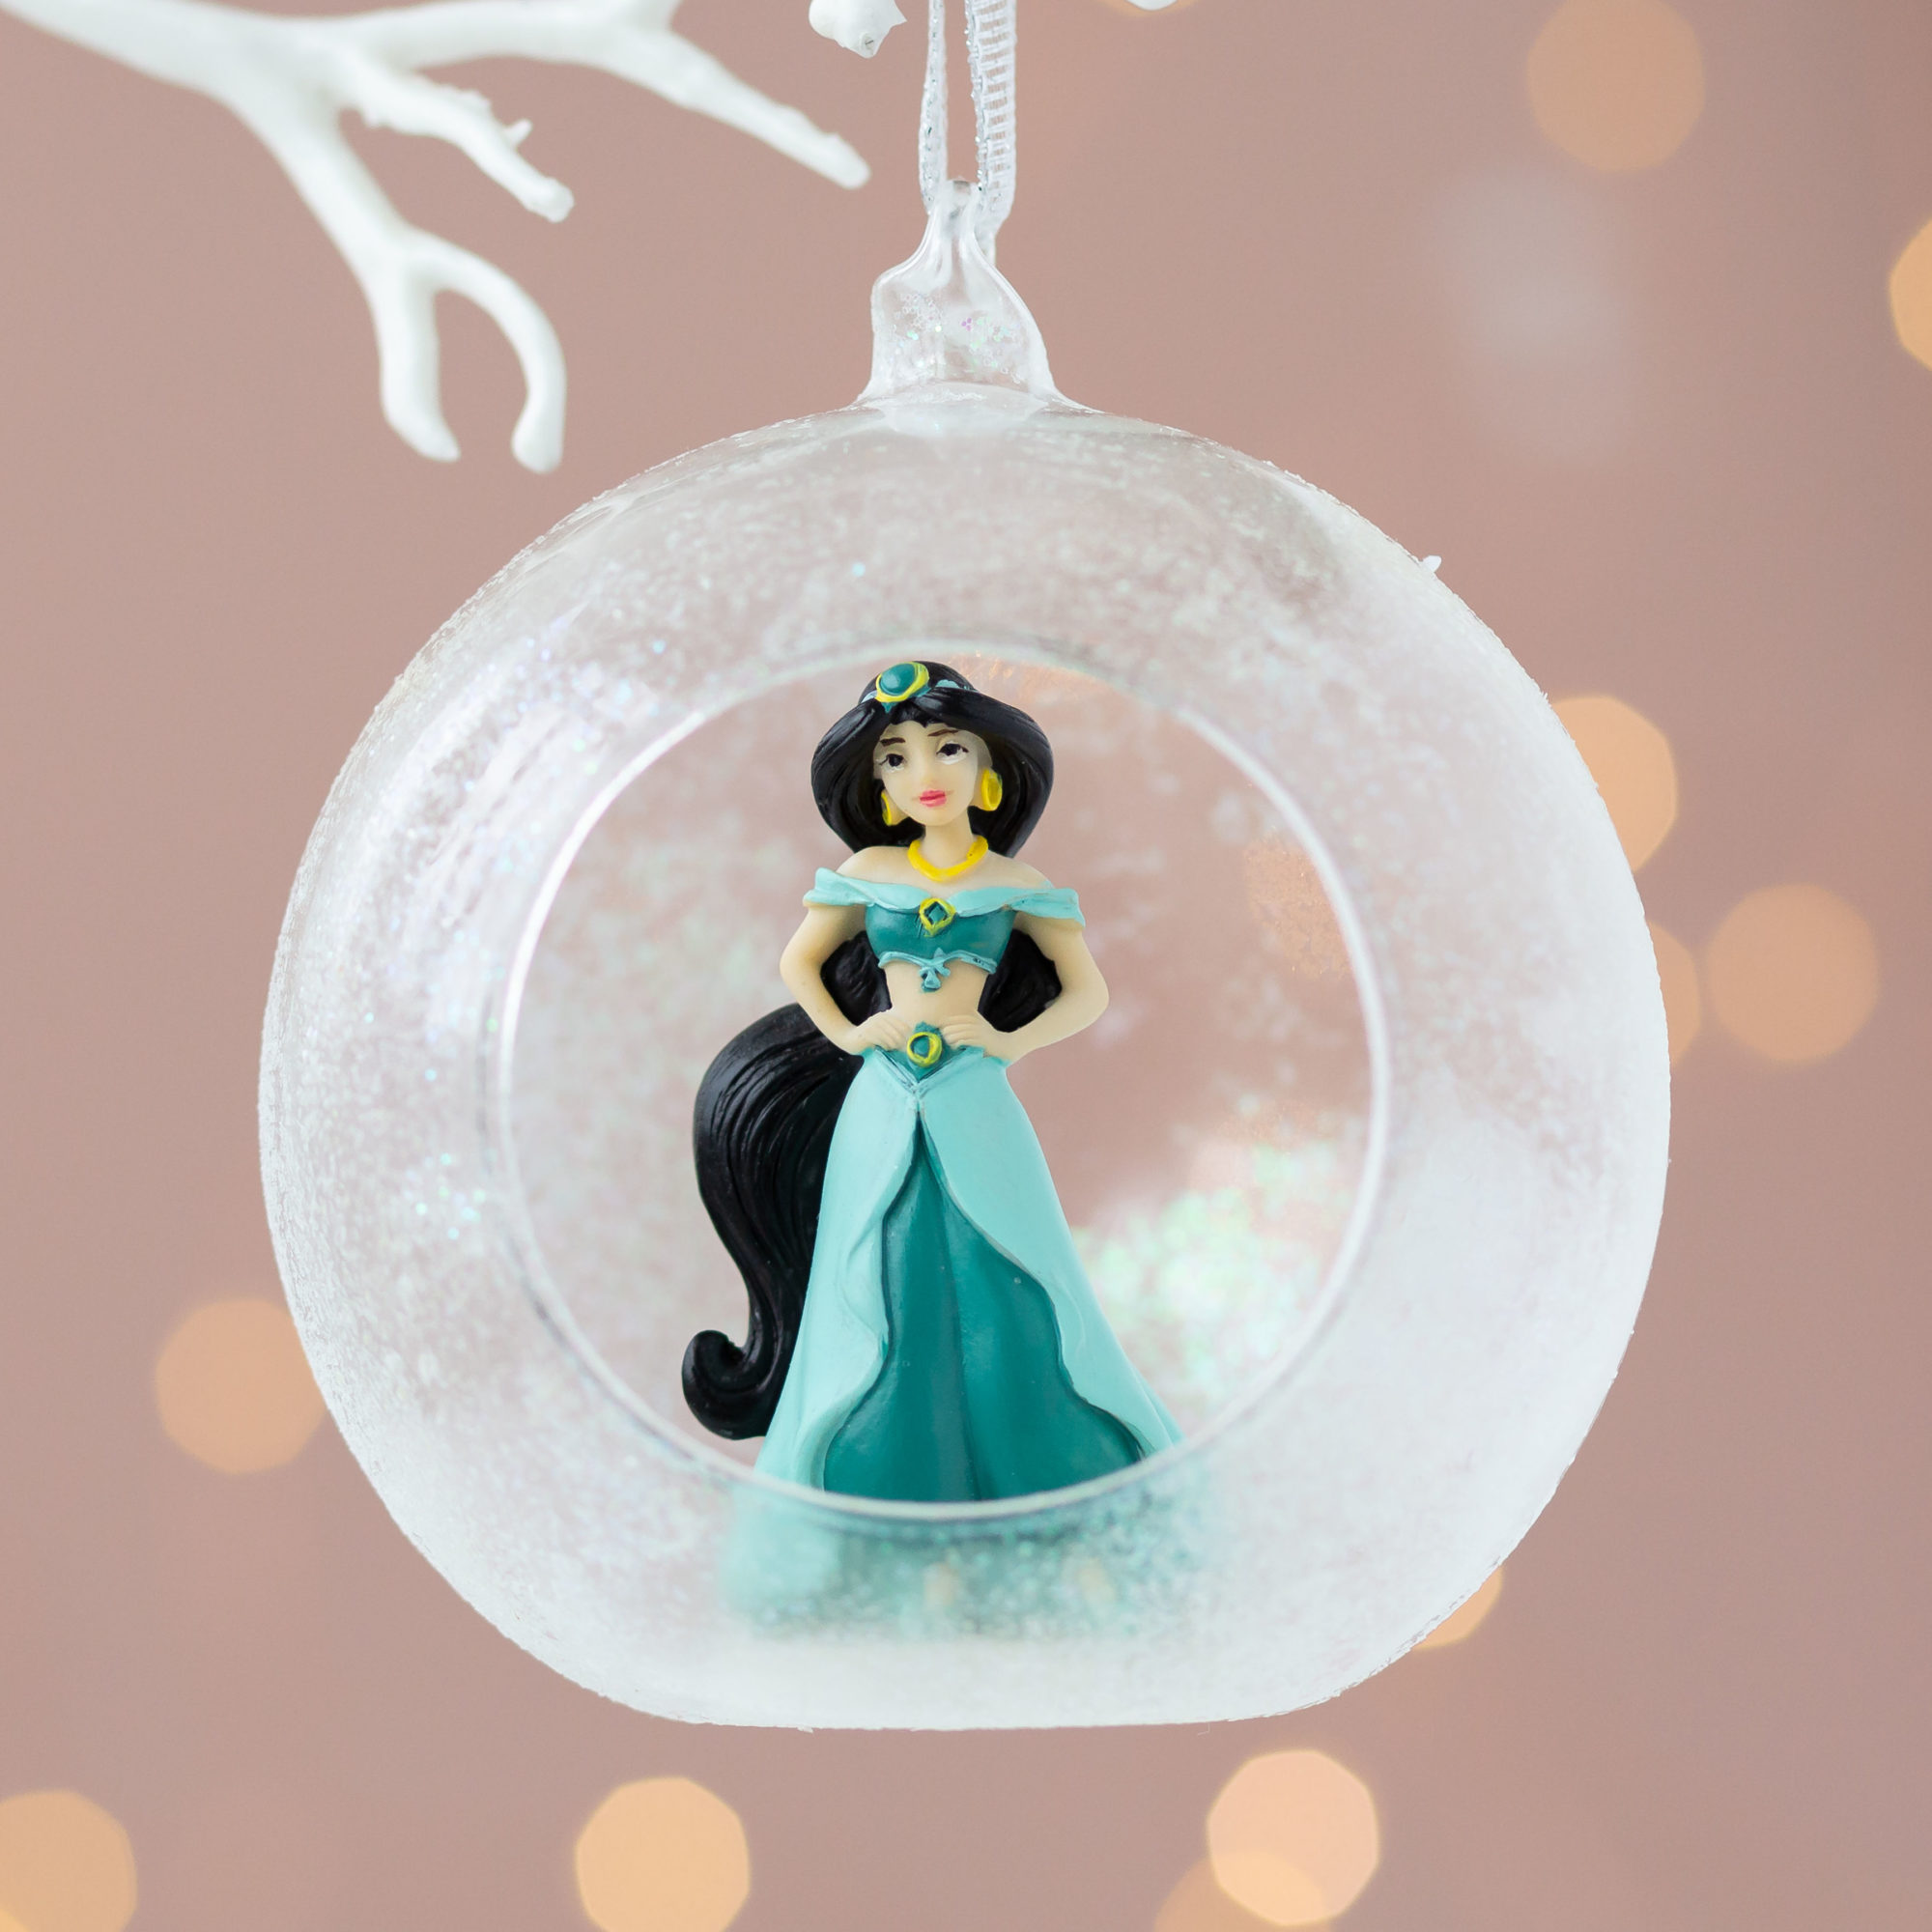 Christmas Disney Princess Jasmine 3D Bauble